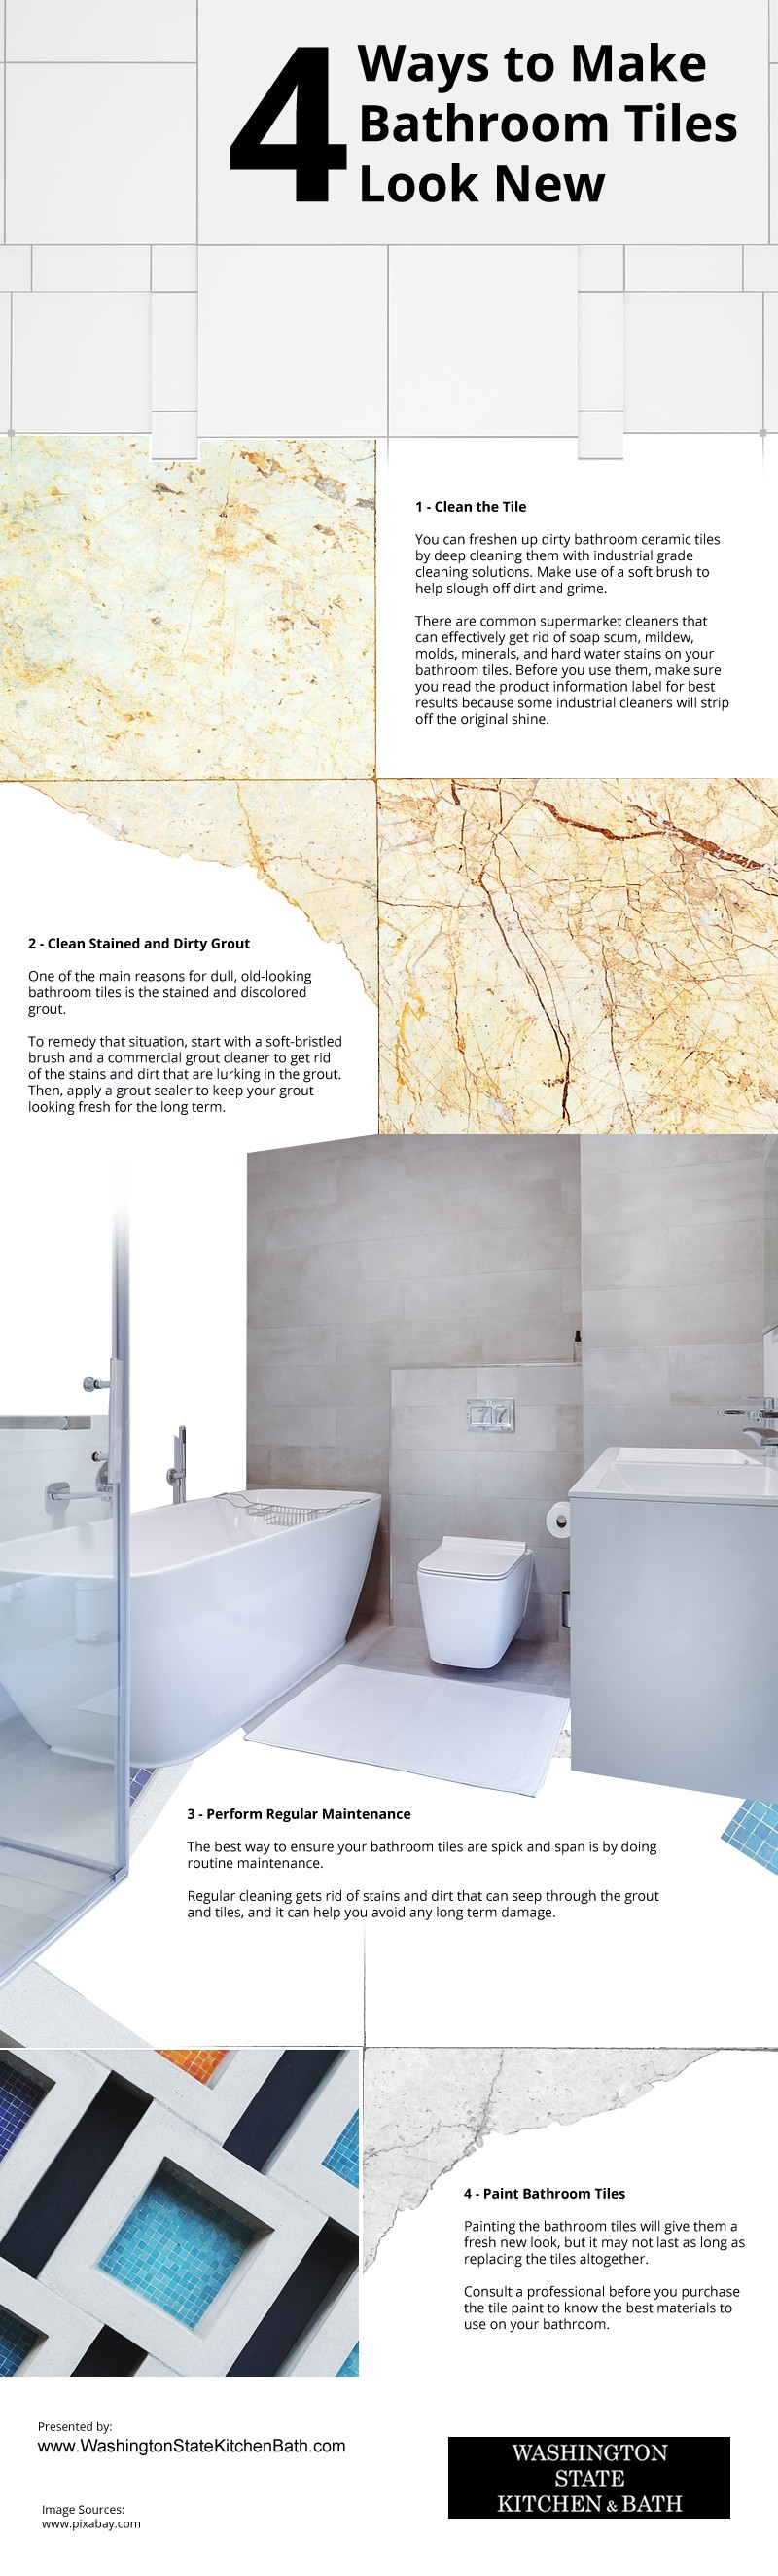 4 Ways to Make Bathroom Tiles Look New Infographic